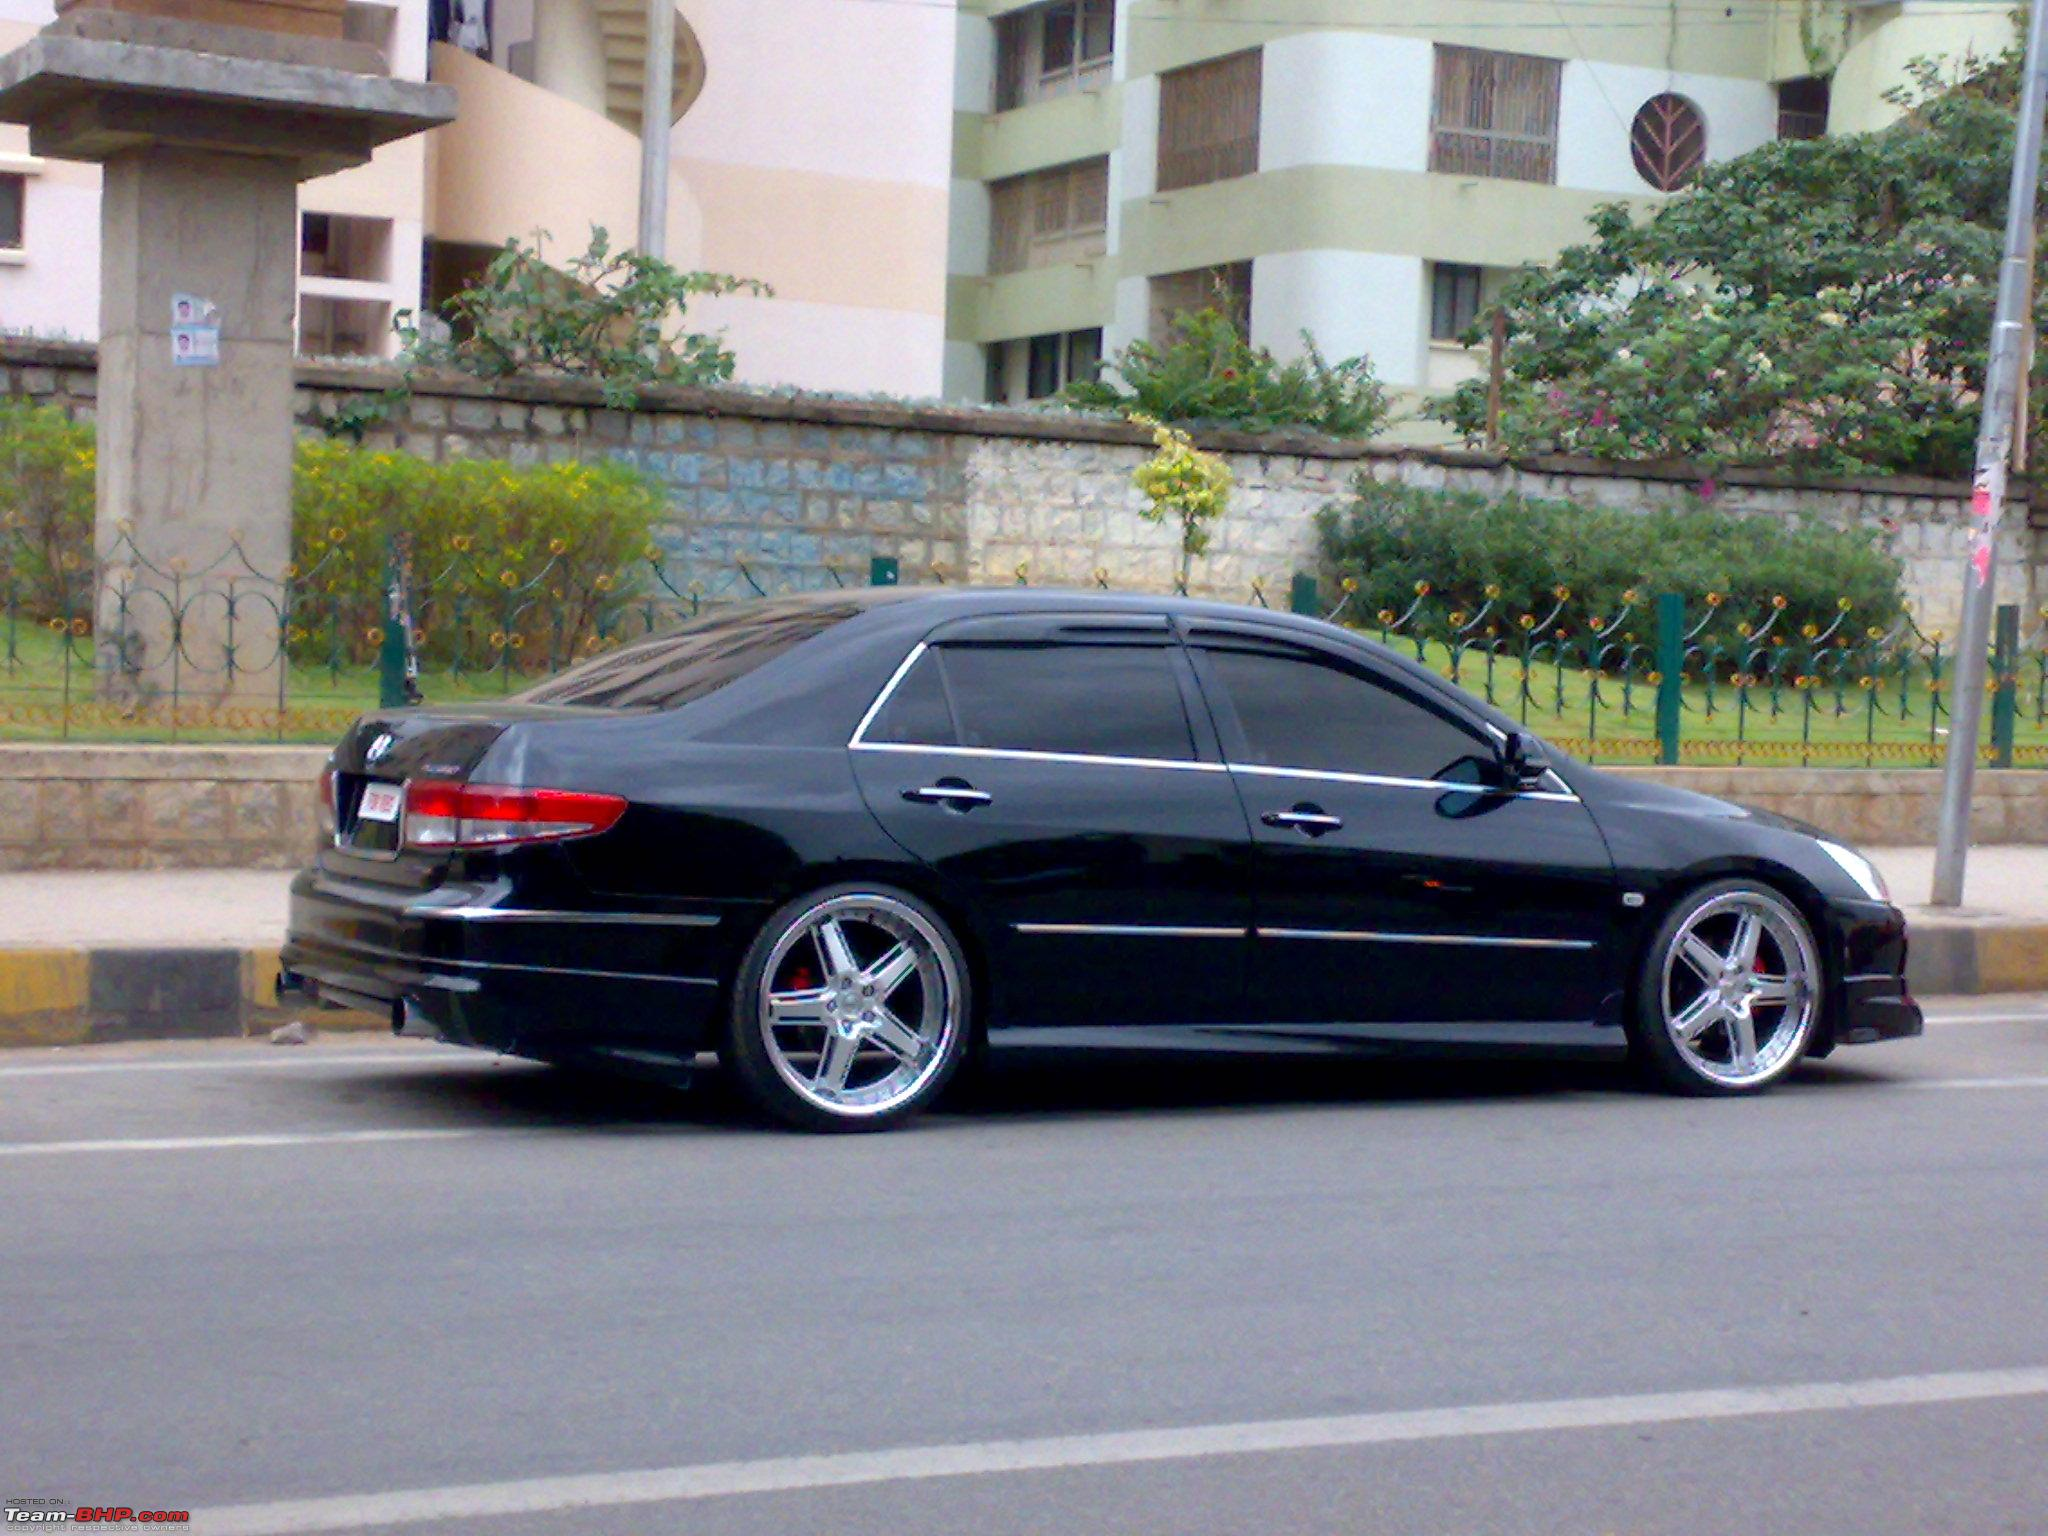 PICS : Tastefully Modified Cars in India-14062008046.jpg